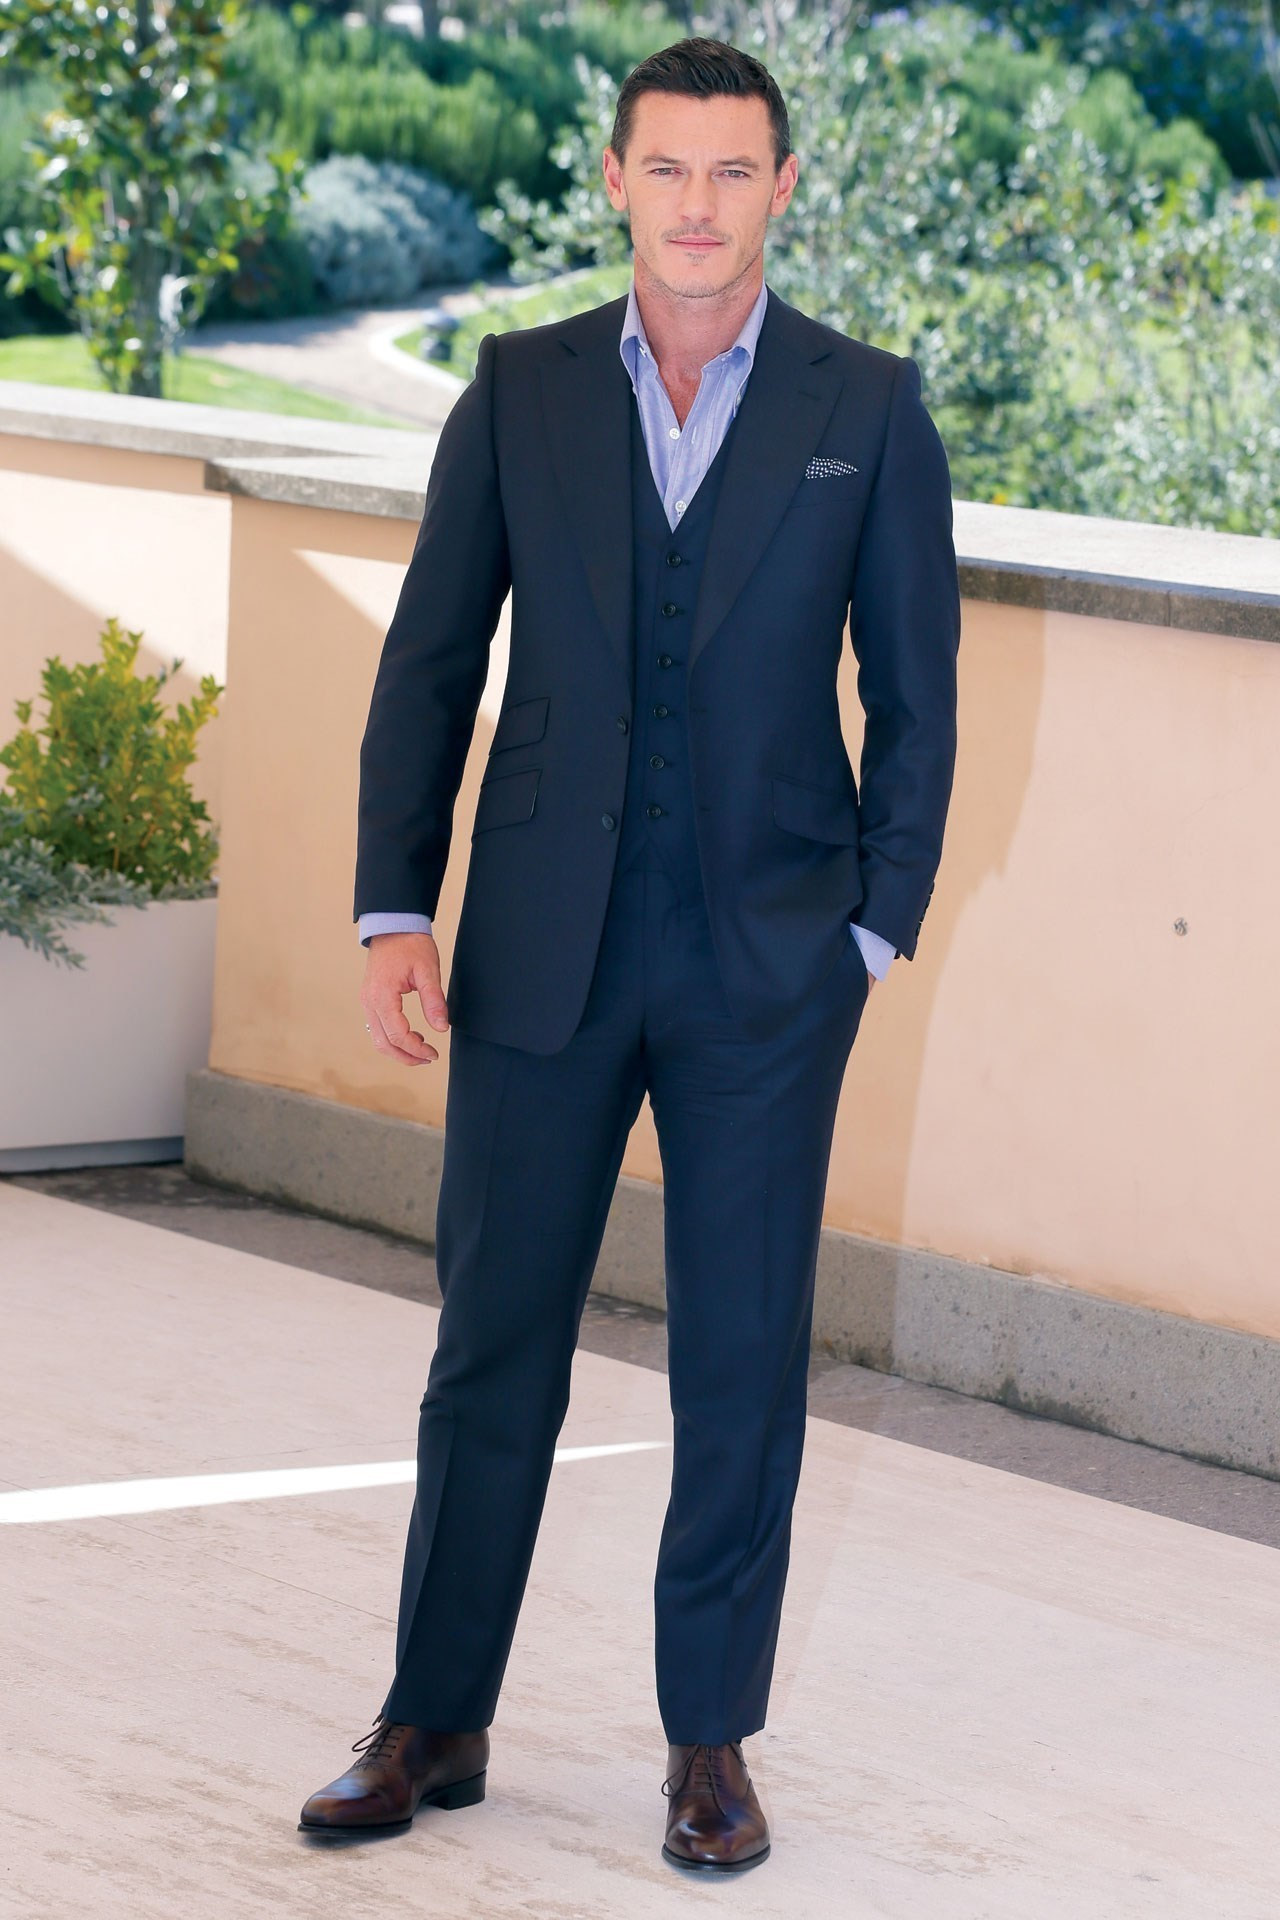 How To Wear a Light Blue Dress Shirt With a Navy Three Piece Suit